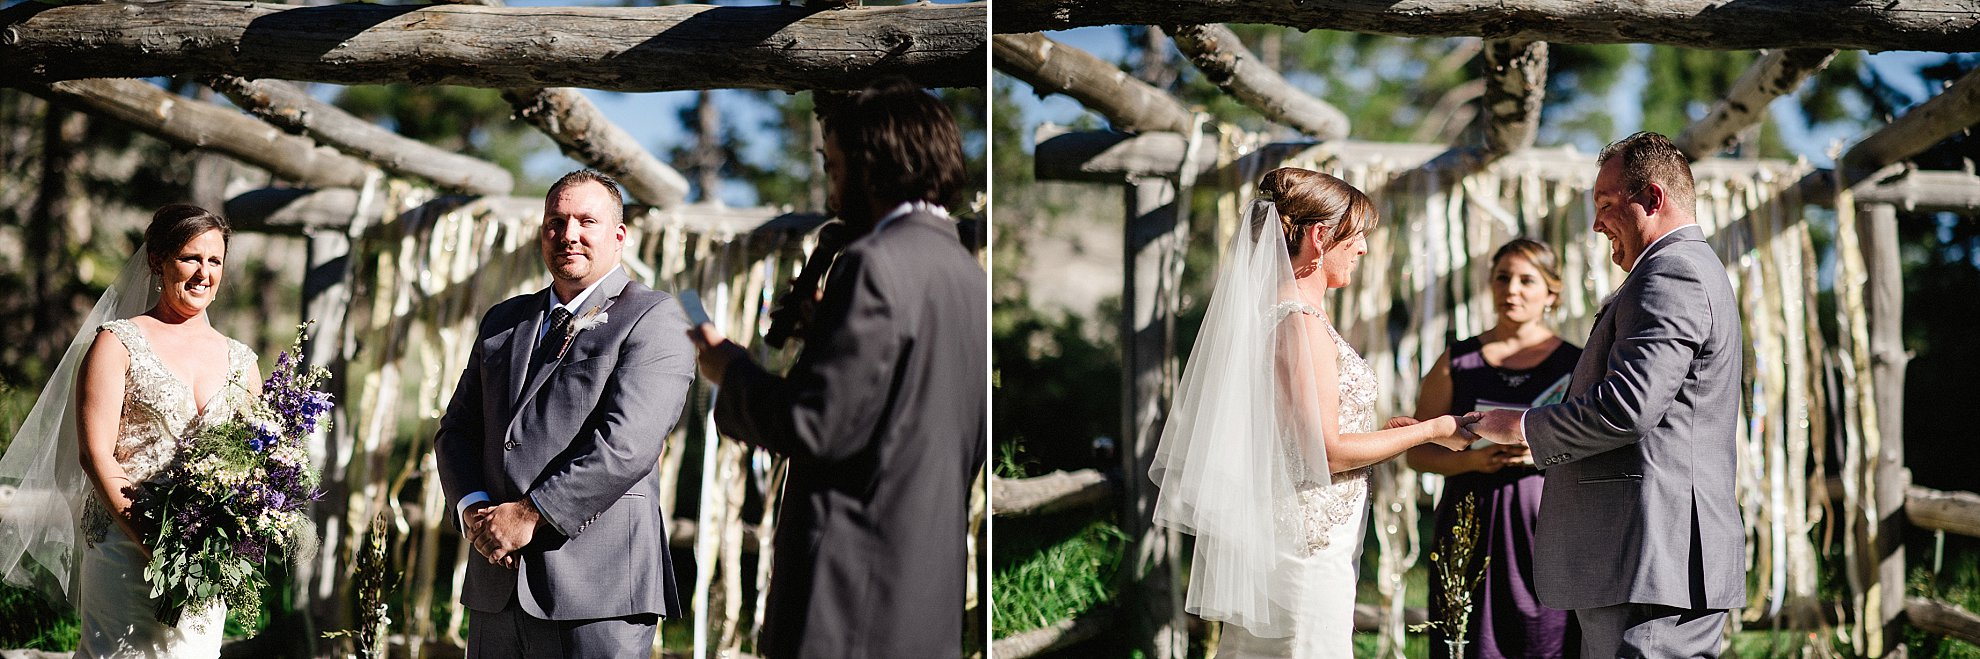 Outdoor Wedding Ceremony Tips From A Photographer